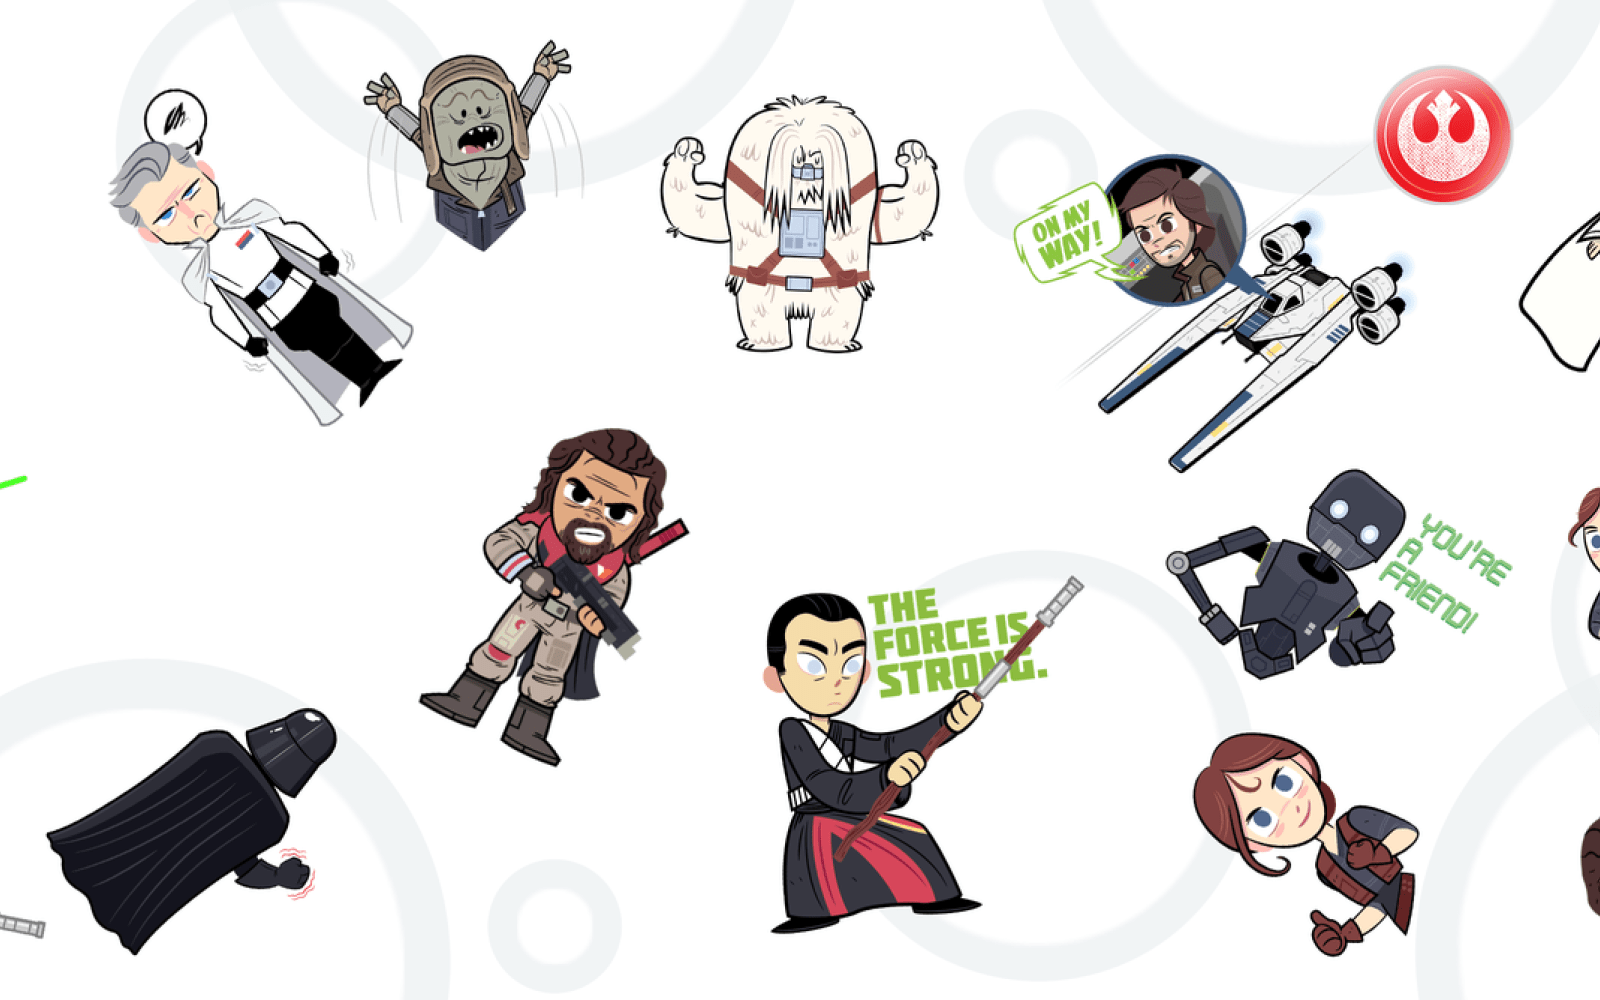 Rogue one a star wars story clipart clip art freeuse library PSA: Google just added \'Rogue One: A Star Wars Story ... clip art freeuse library